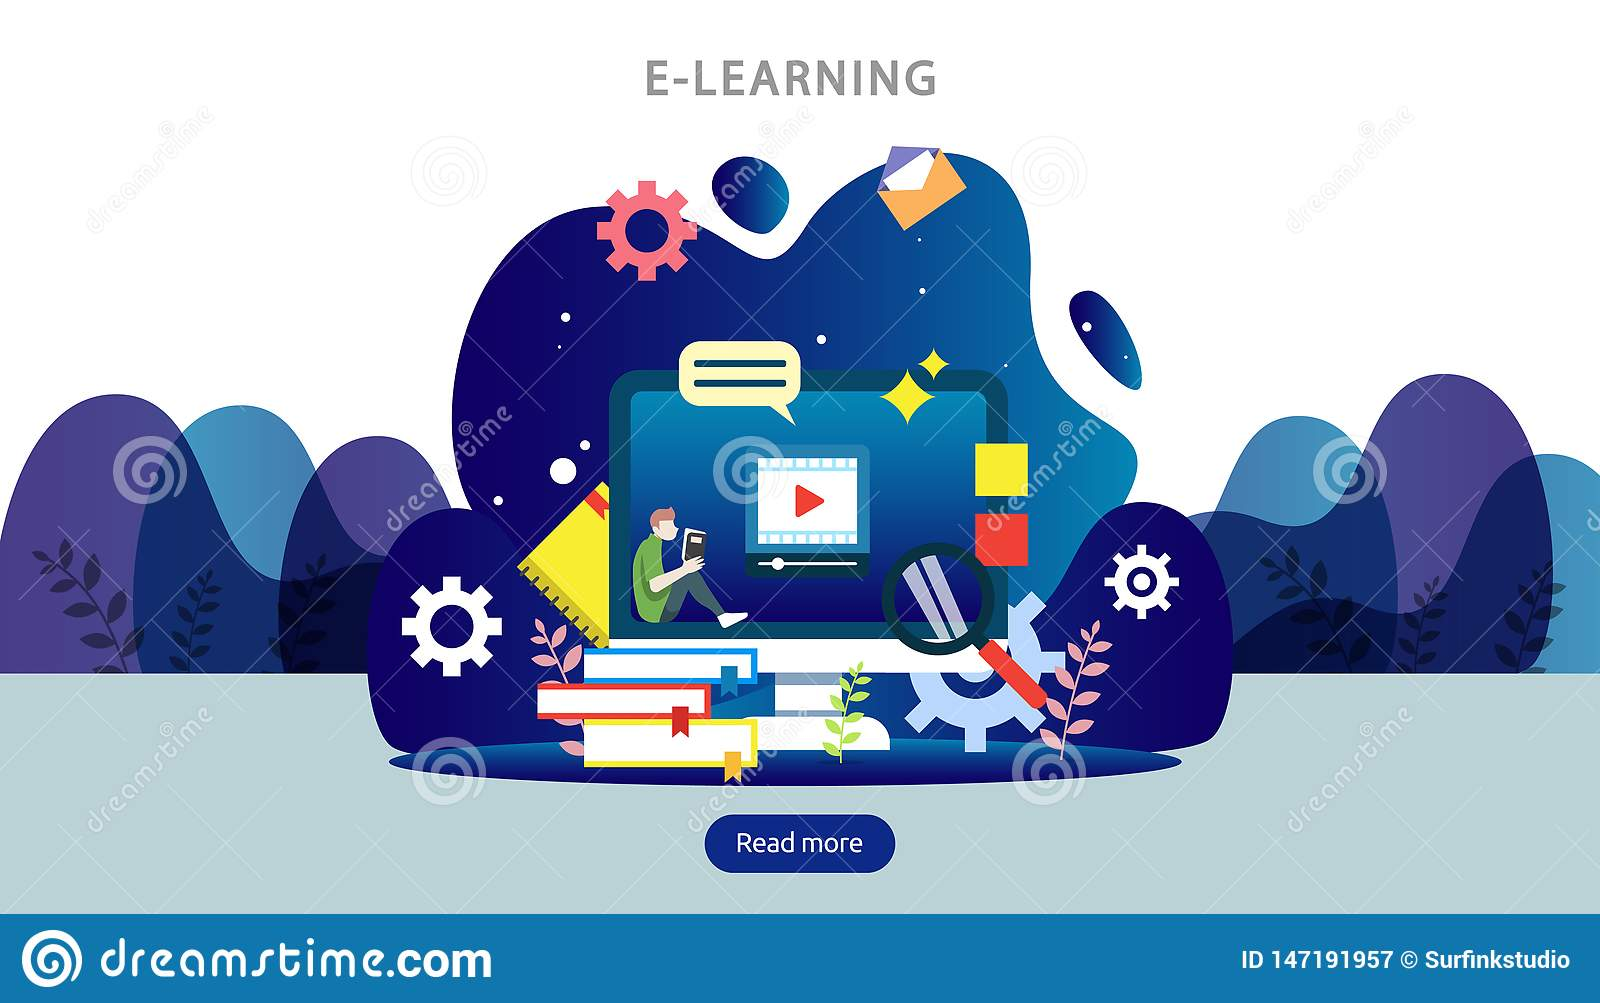 E-learning concept with computer, book and tiny people character in study process. E-book or online education. template for web